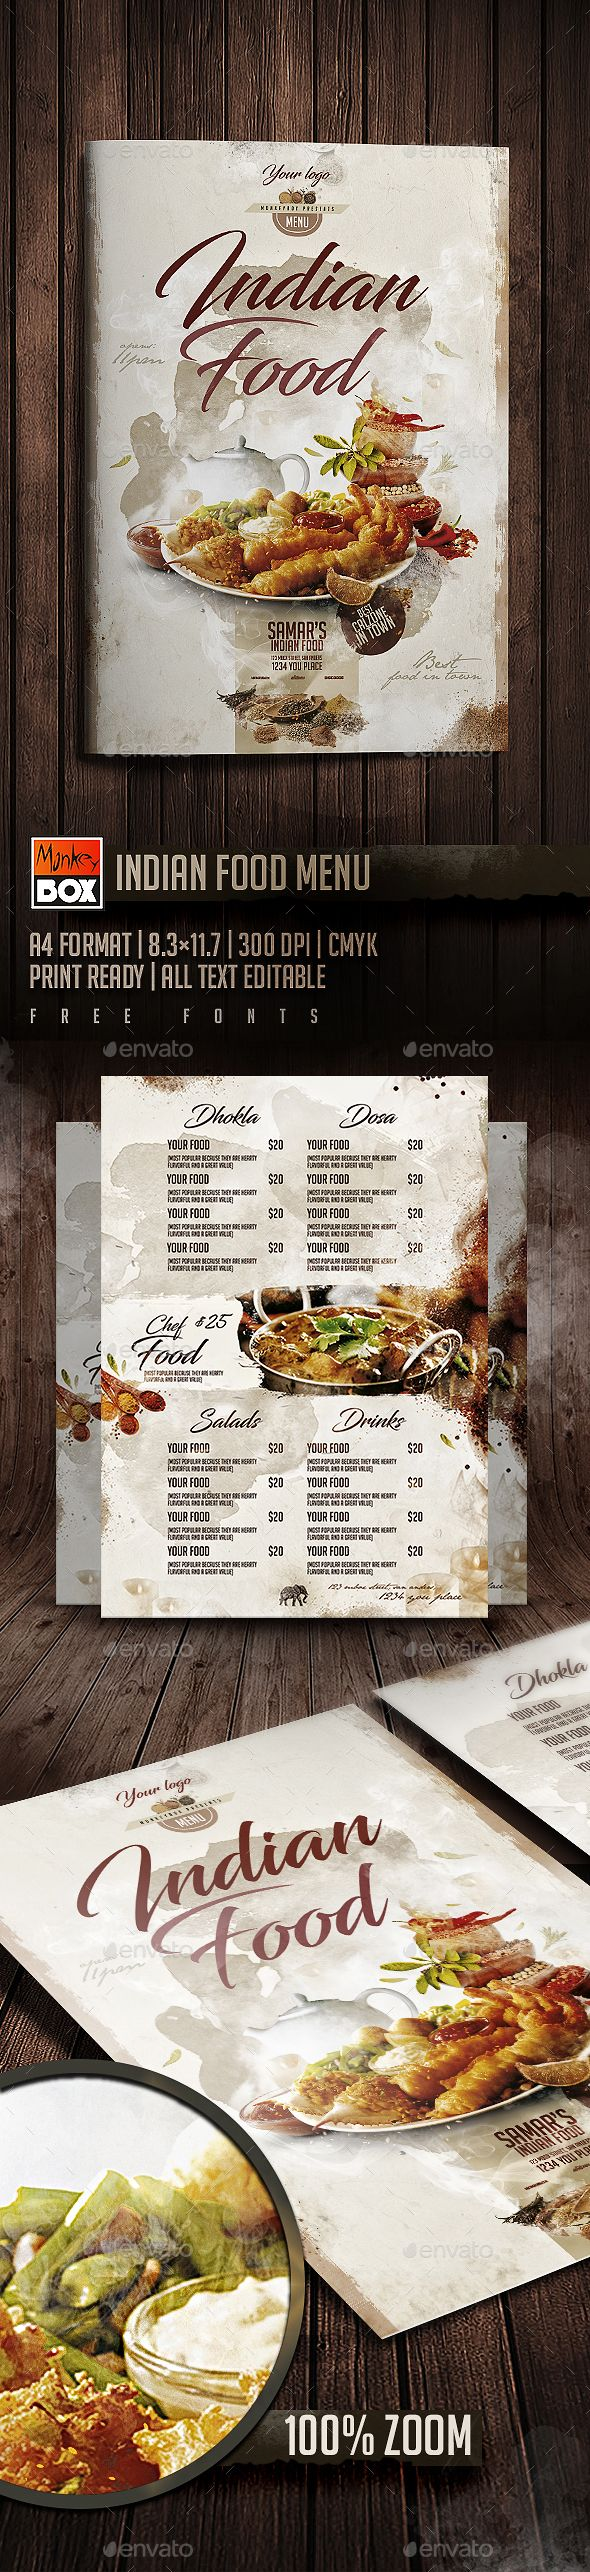 Indian Food Menu — Photoshop PSD #8.3x11.7 #menu • Download ➝ https://graphicriver.net/item/indian-food-menu/19736329?ref=pxcr